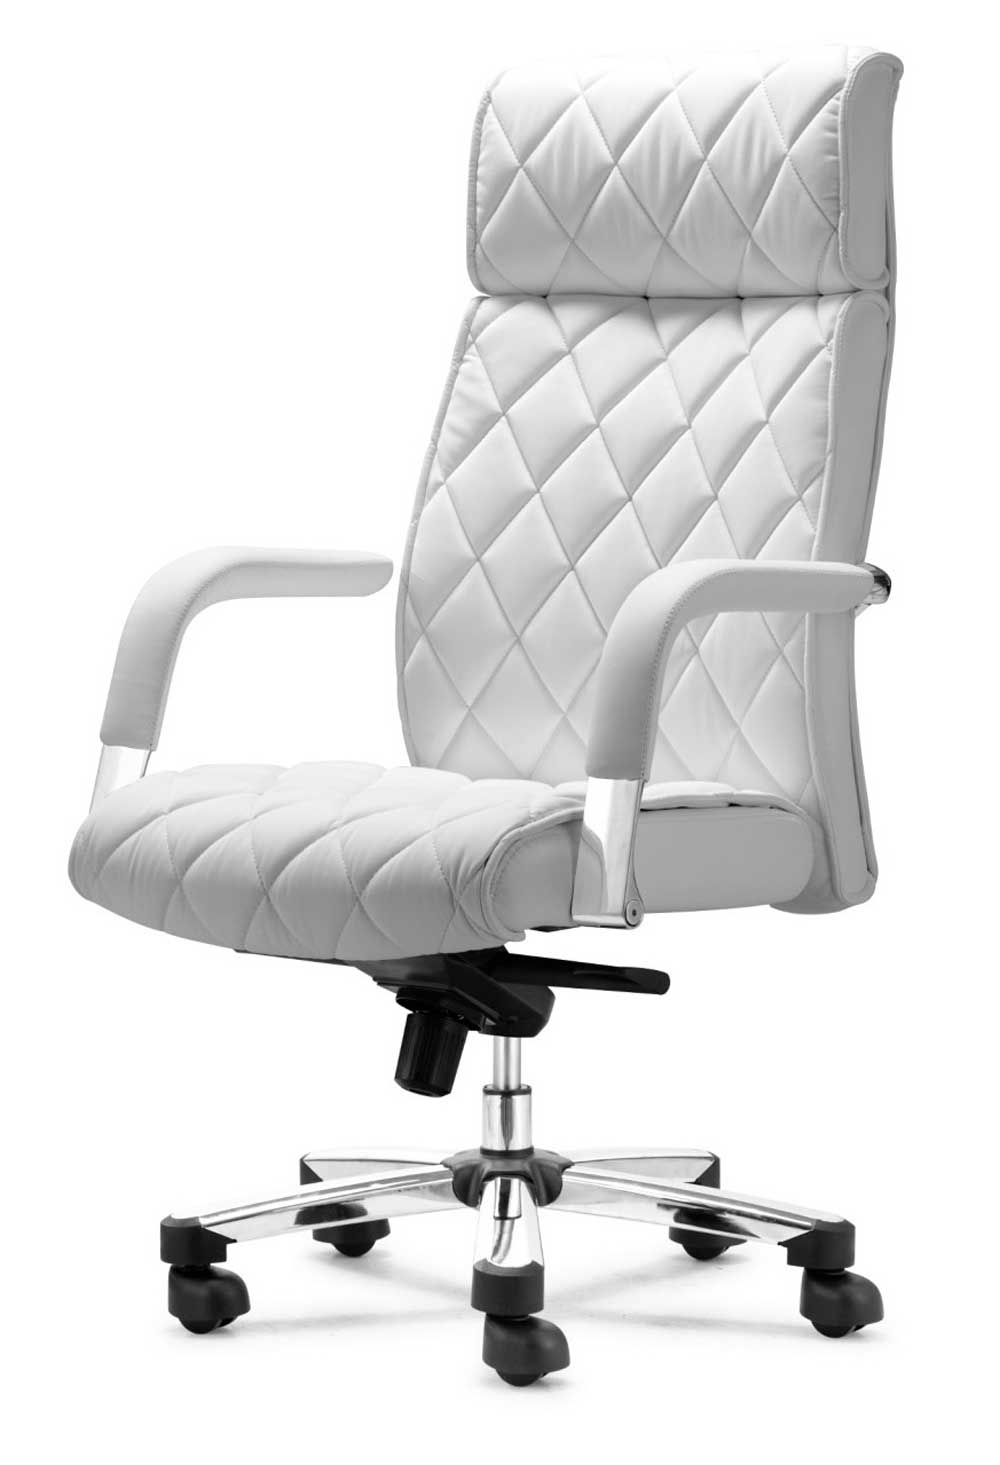 Chairs : Home Office Furniture Office Chairs Online Ergonomic Desk Intended For Recent High End Executive Office Chairs (View 4 of 20)